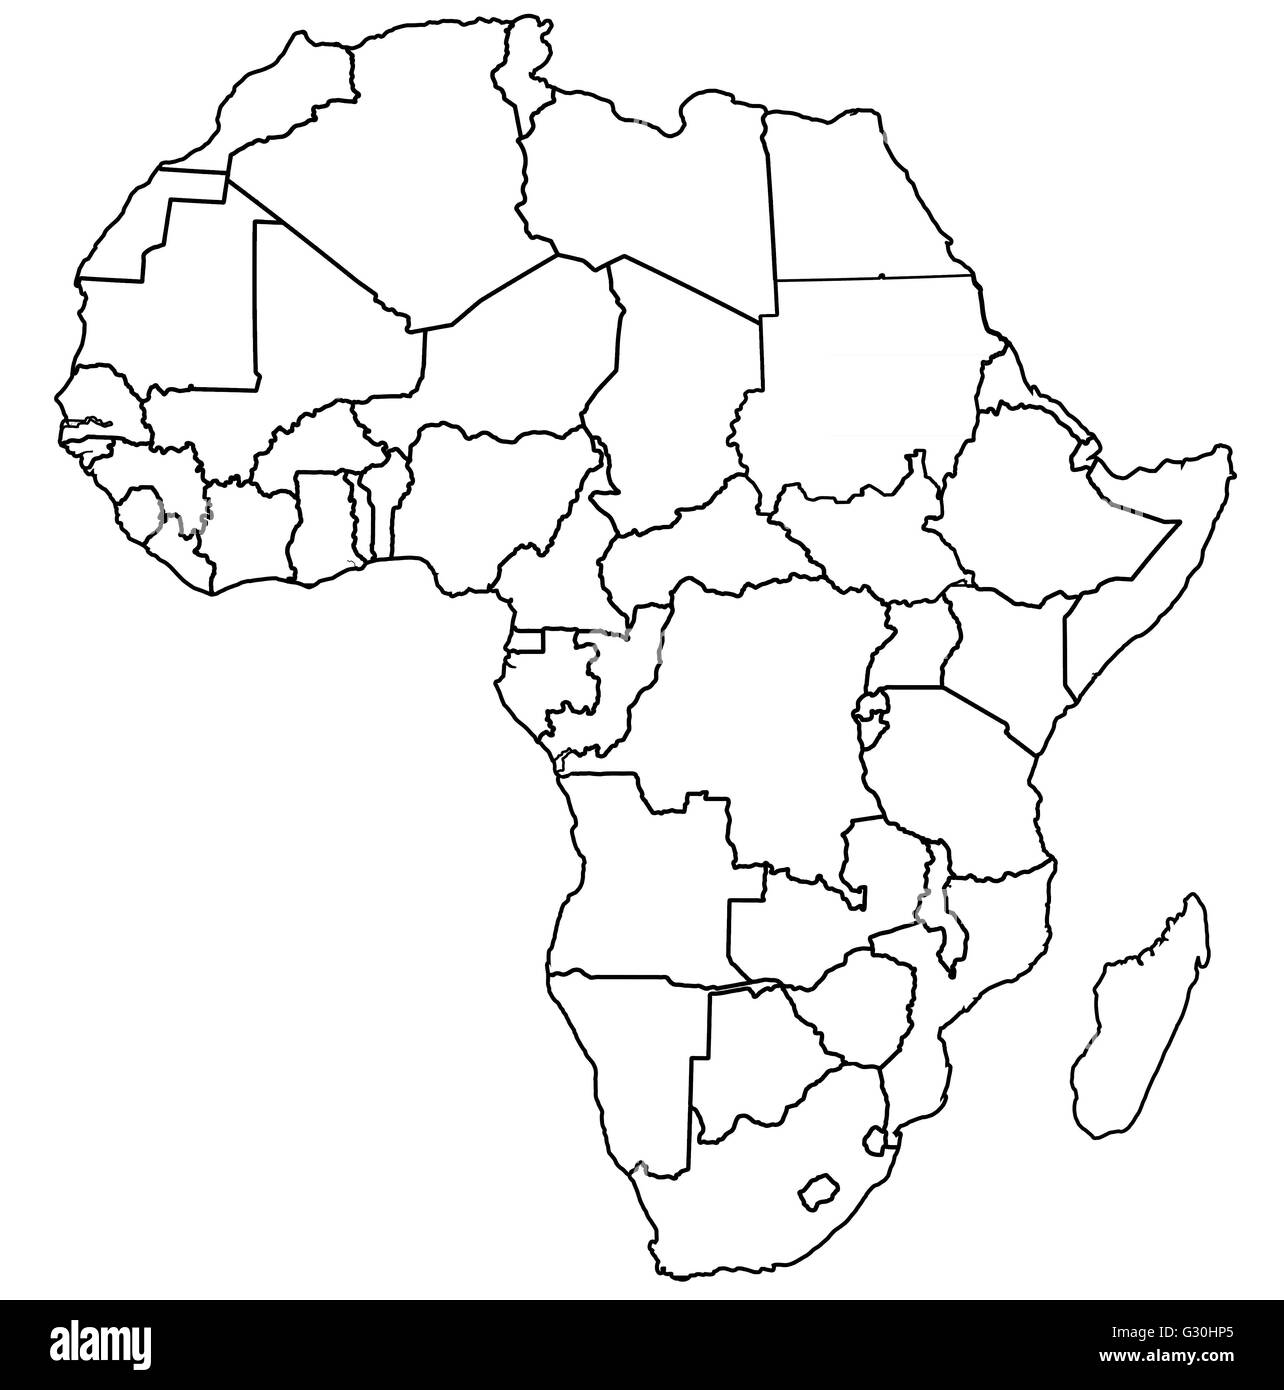 Africa Map Black And White Political Map Of Africa Black and White Stock Photos & Images   Alamy